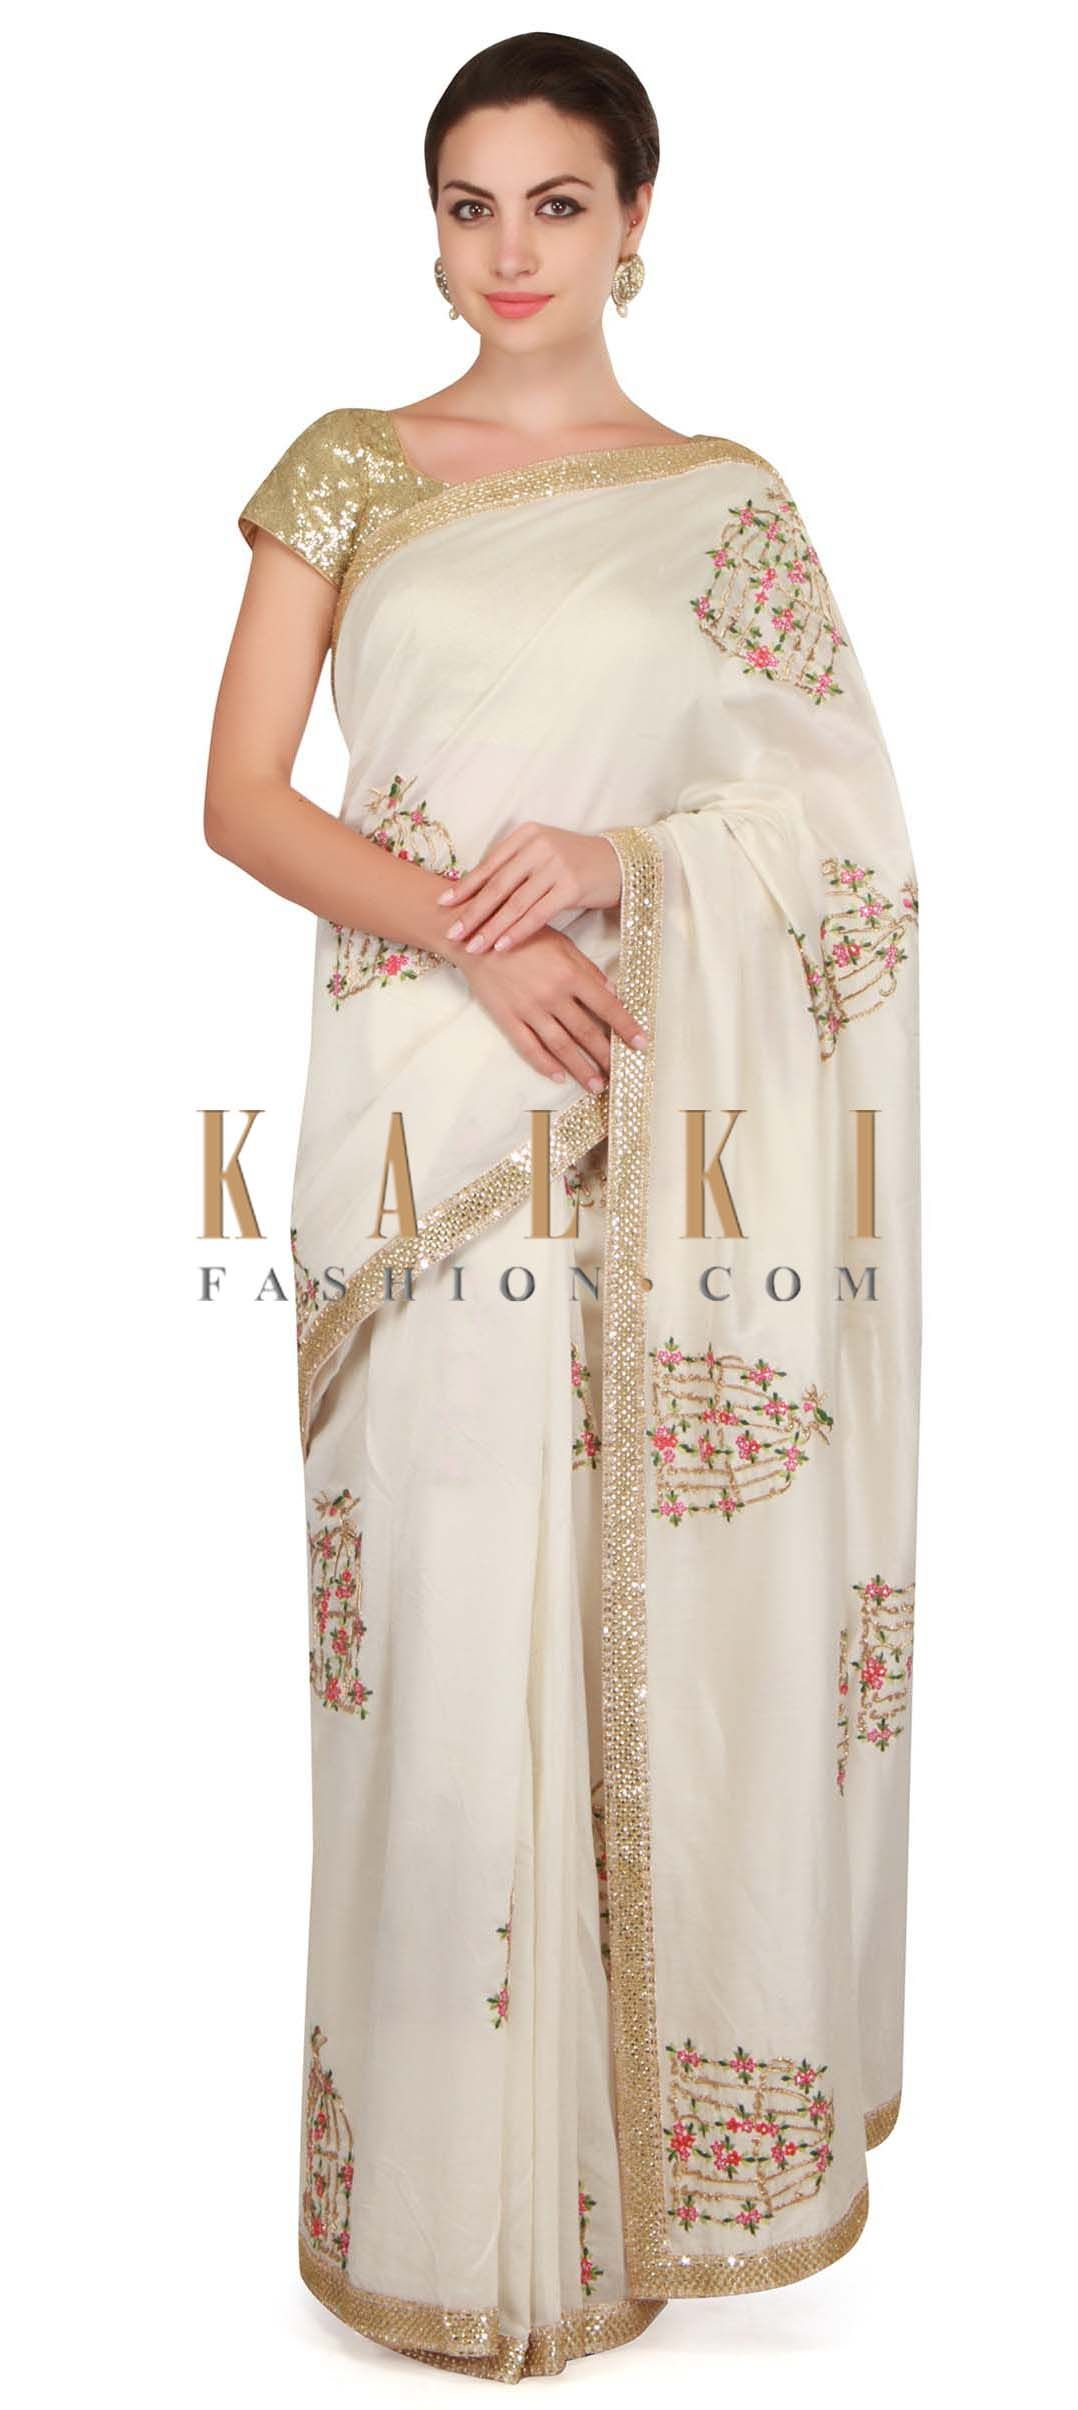 d0851095d7103 Buy Online from the link below. We ship worldwide Click Anywhere to Tag  Cream saree in satin silk with a brocade blouse adorn in cut dana work only  on Kalki ...